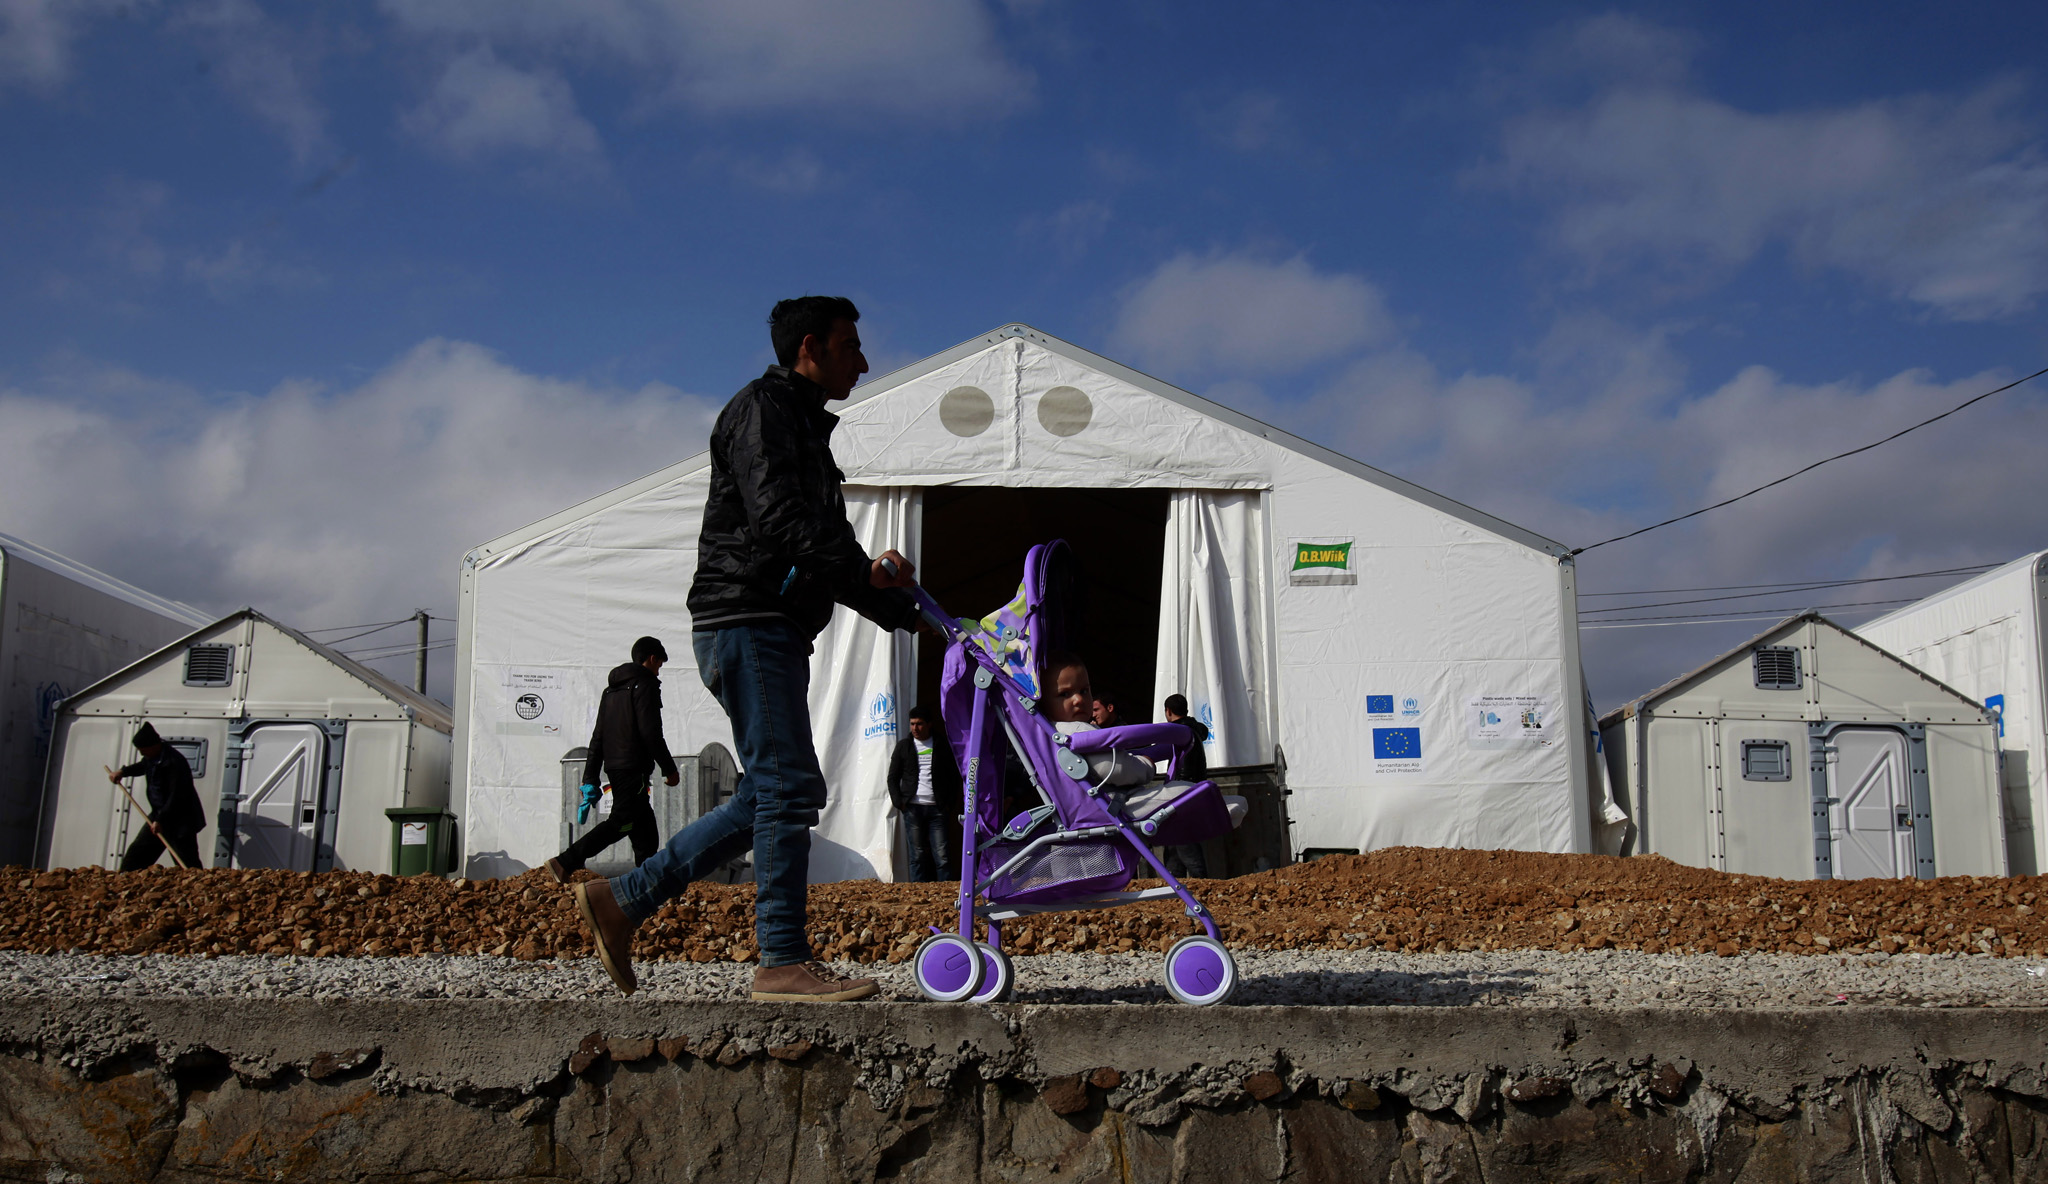 A man pushes a baby in a stroller in front of tents at the transit center for refugees near northern Macedonian village of Tabanovce